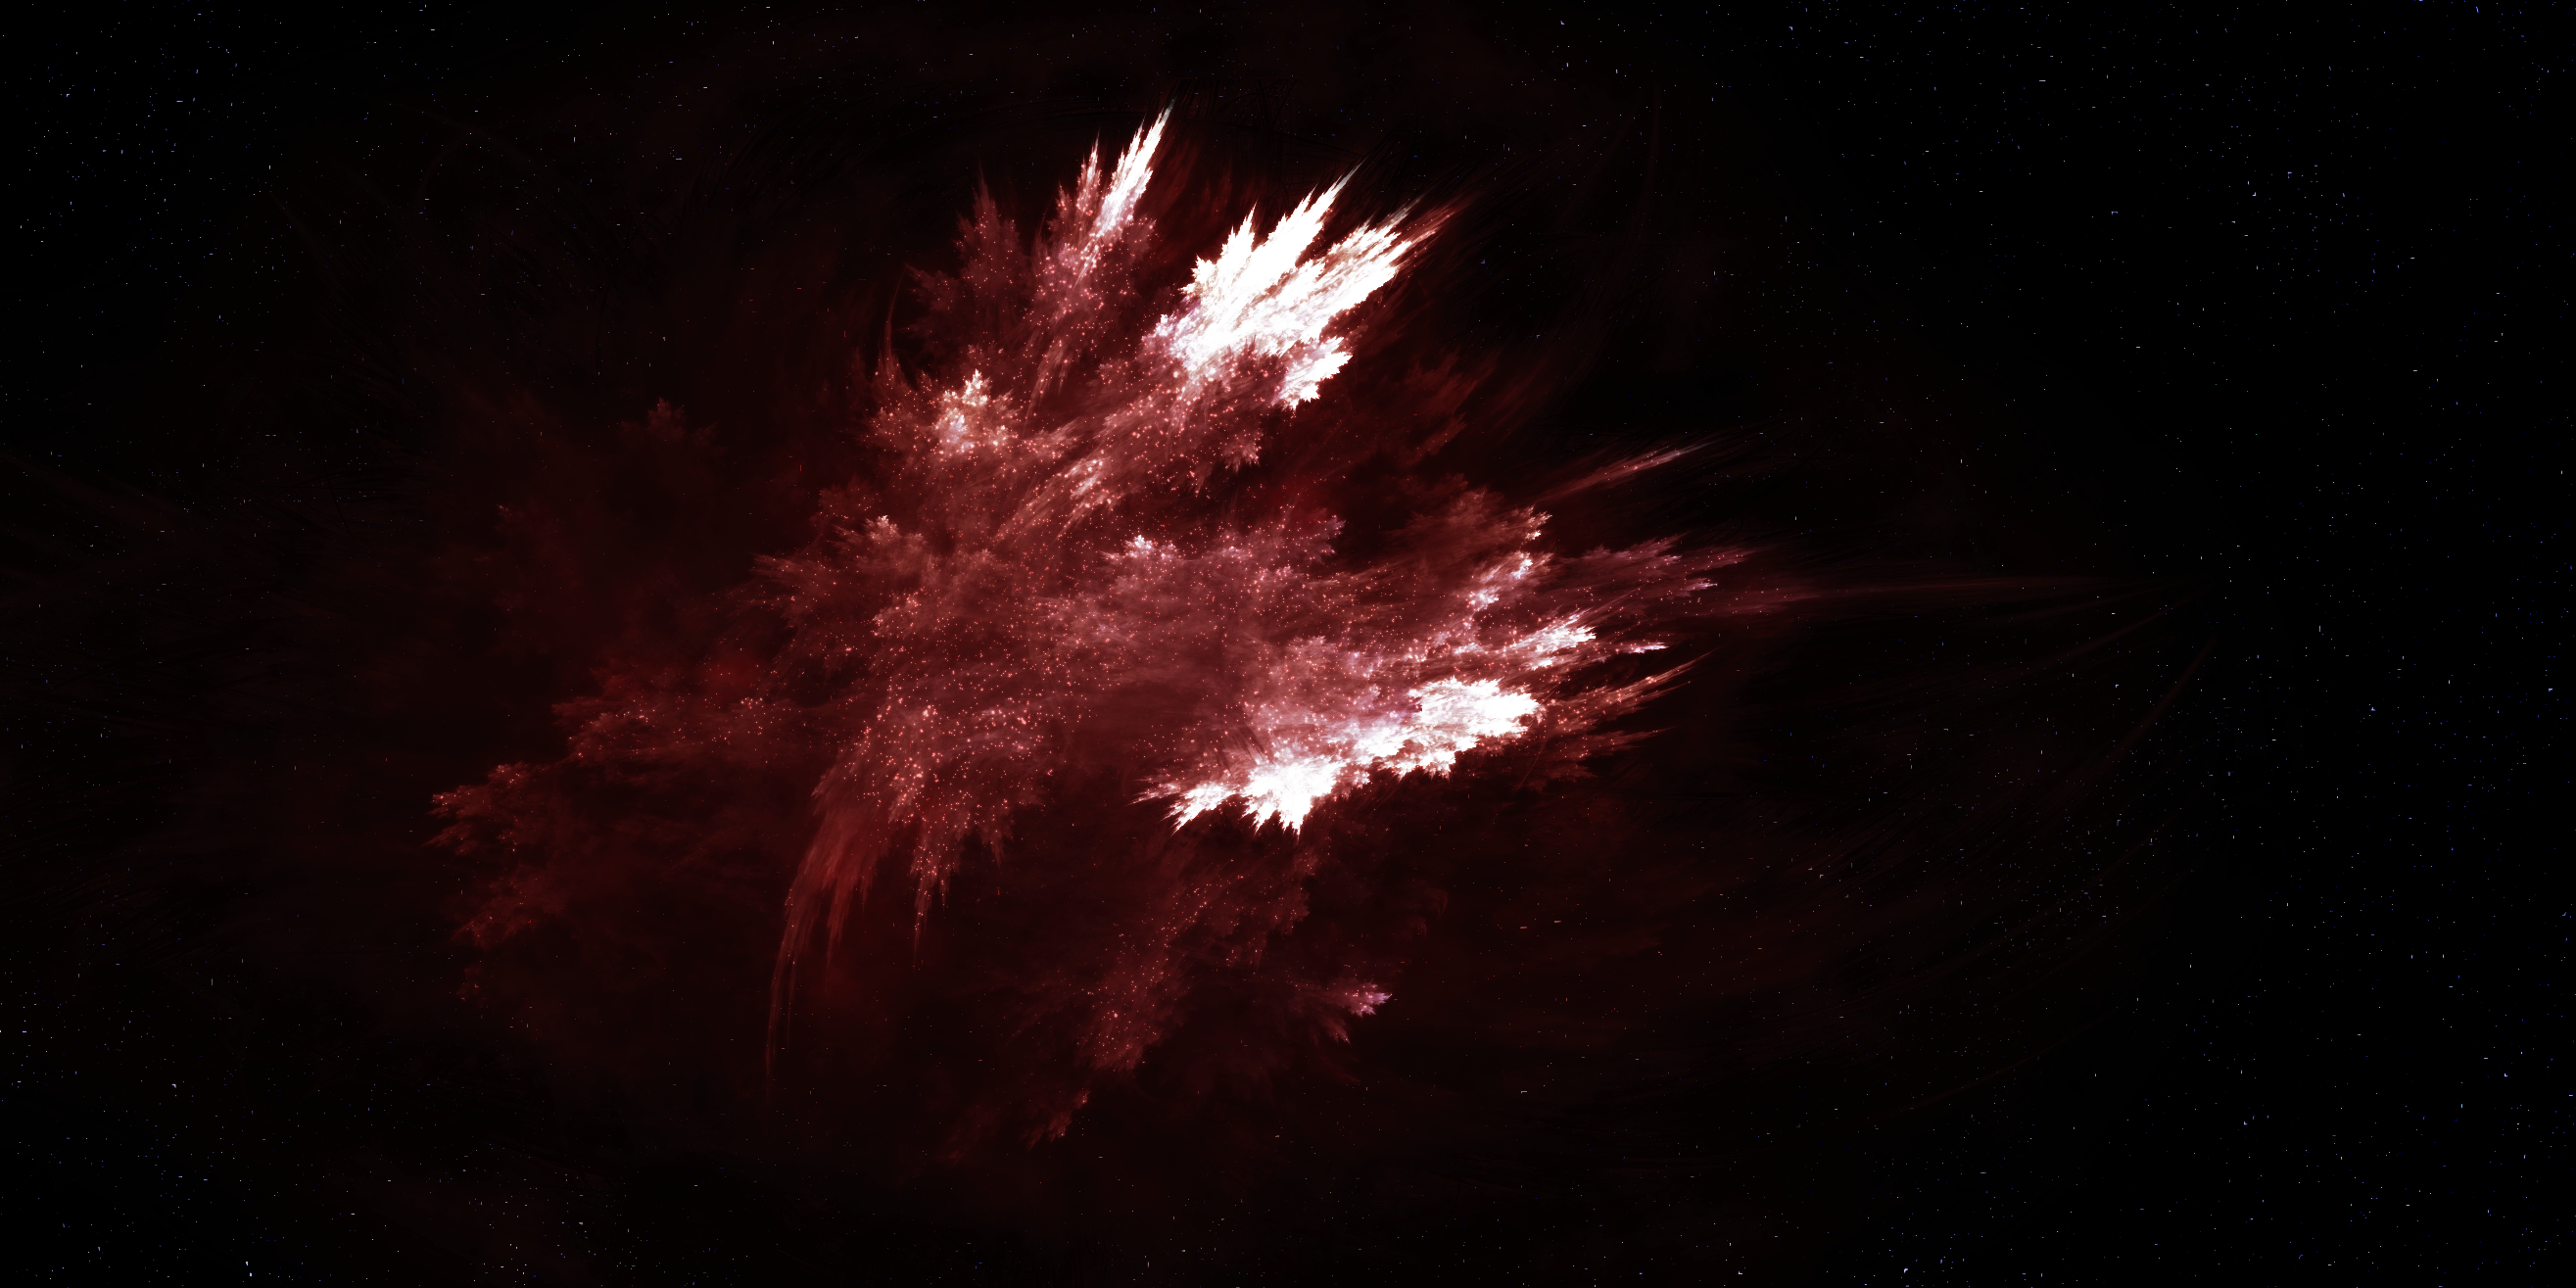 Space Texture 2